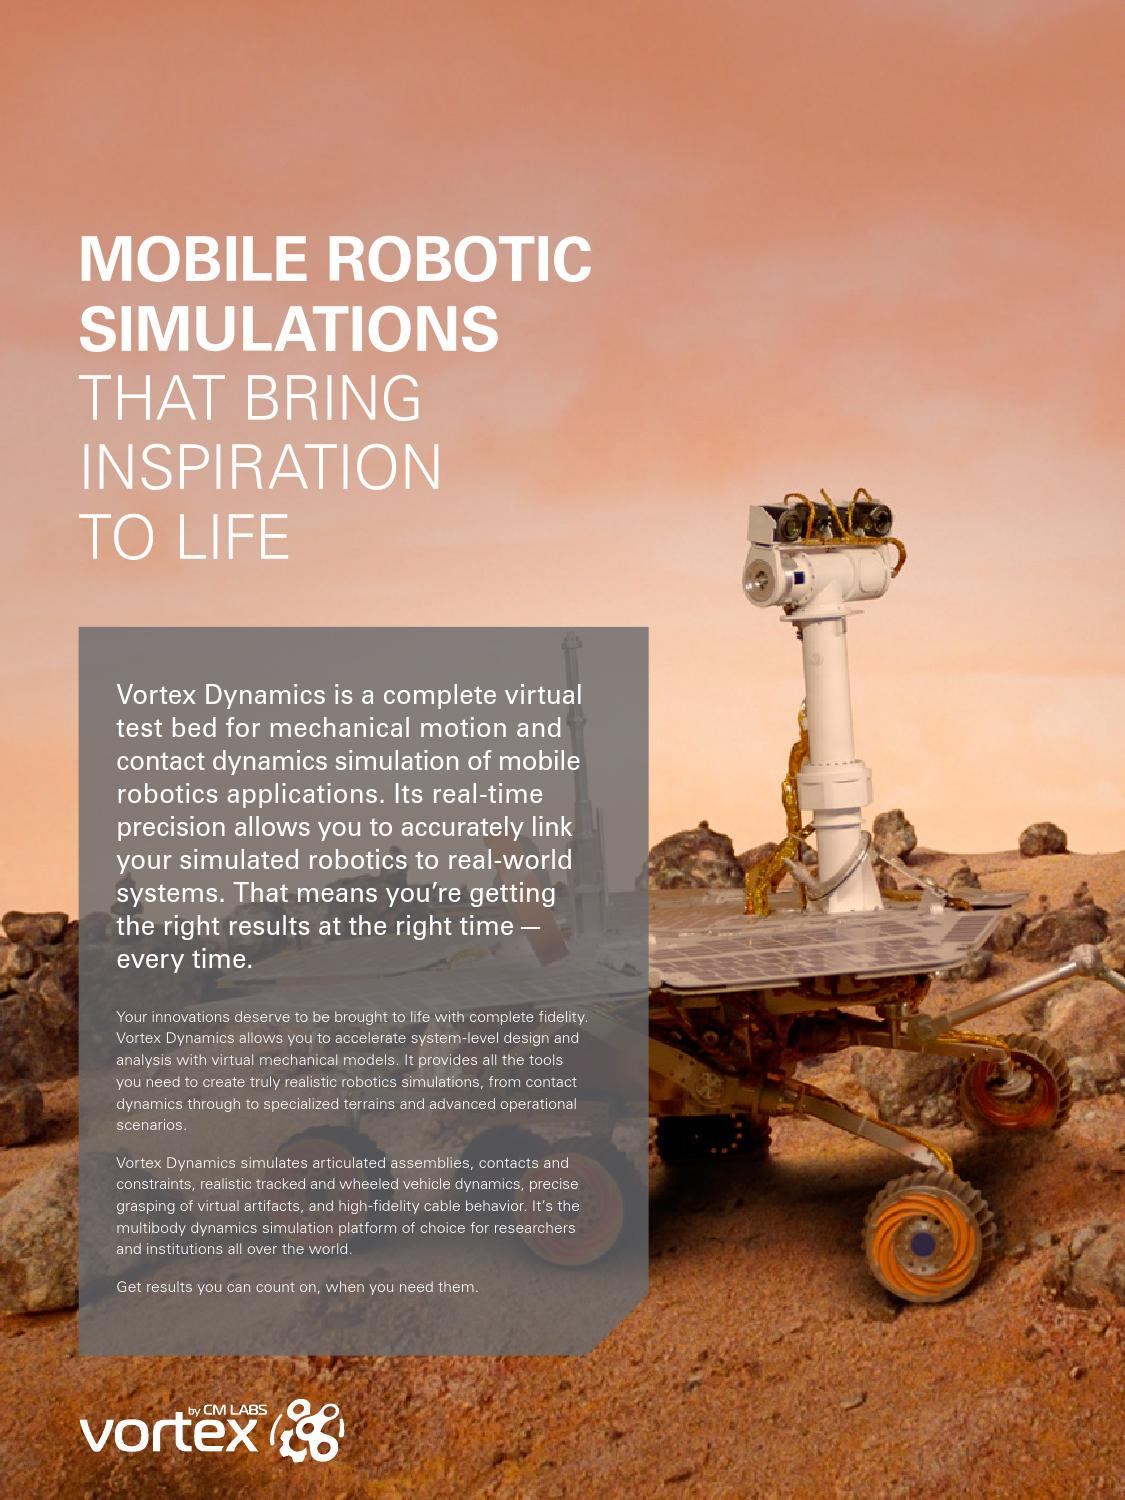 Mobile Robotic Simulations that Bring Inspiration to Life by CM Labs